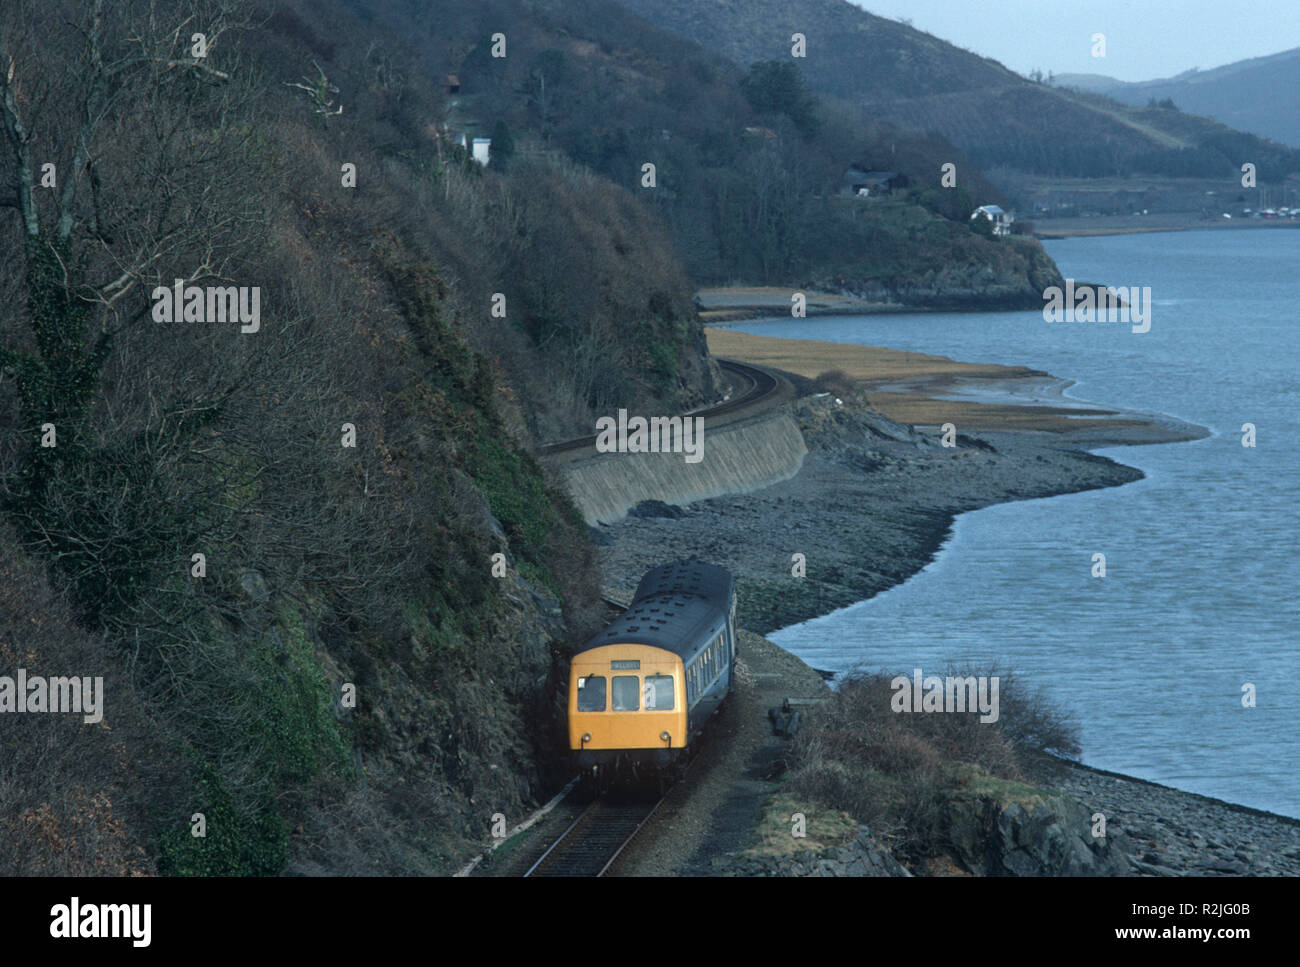 British Rail Diesel Multiple Unit, DMU, train on the Dovey Junction to Pwllheli Cambrian Coast railway line, Dovey River, Mid Wales, Great Britain - Stock Image